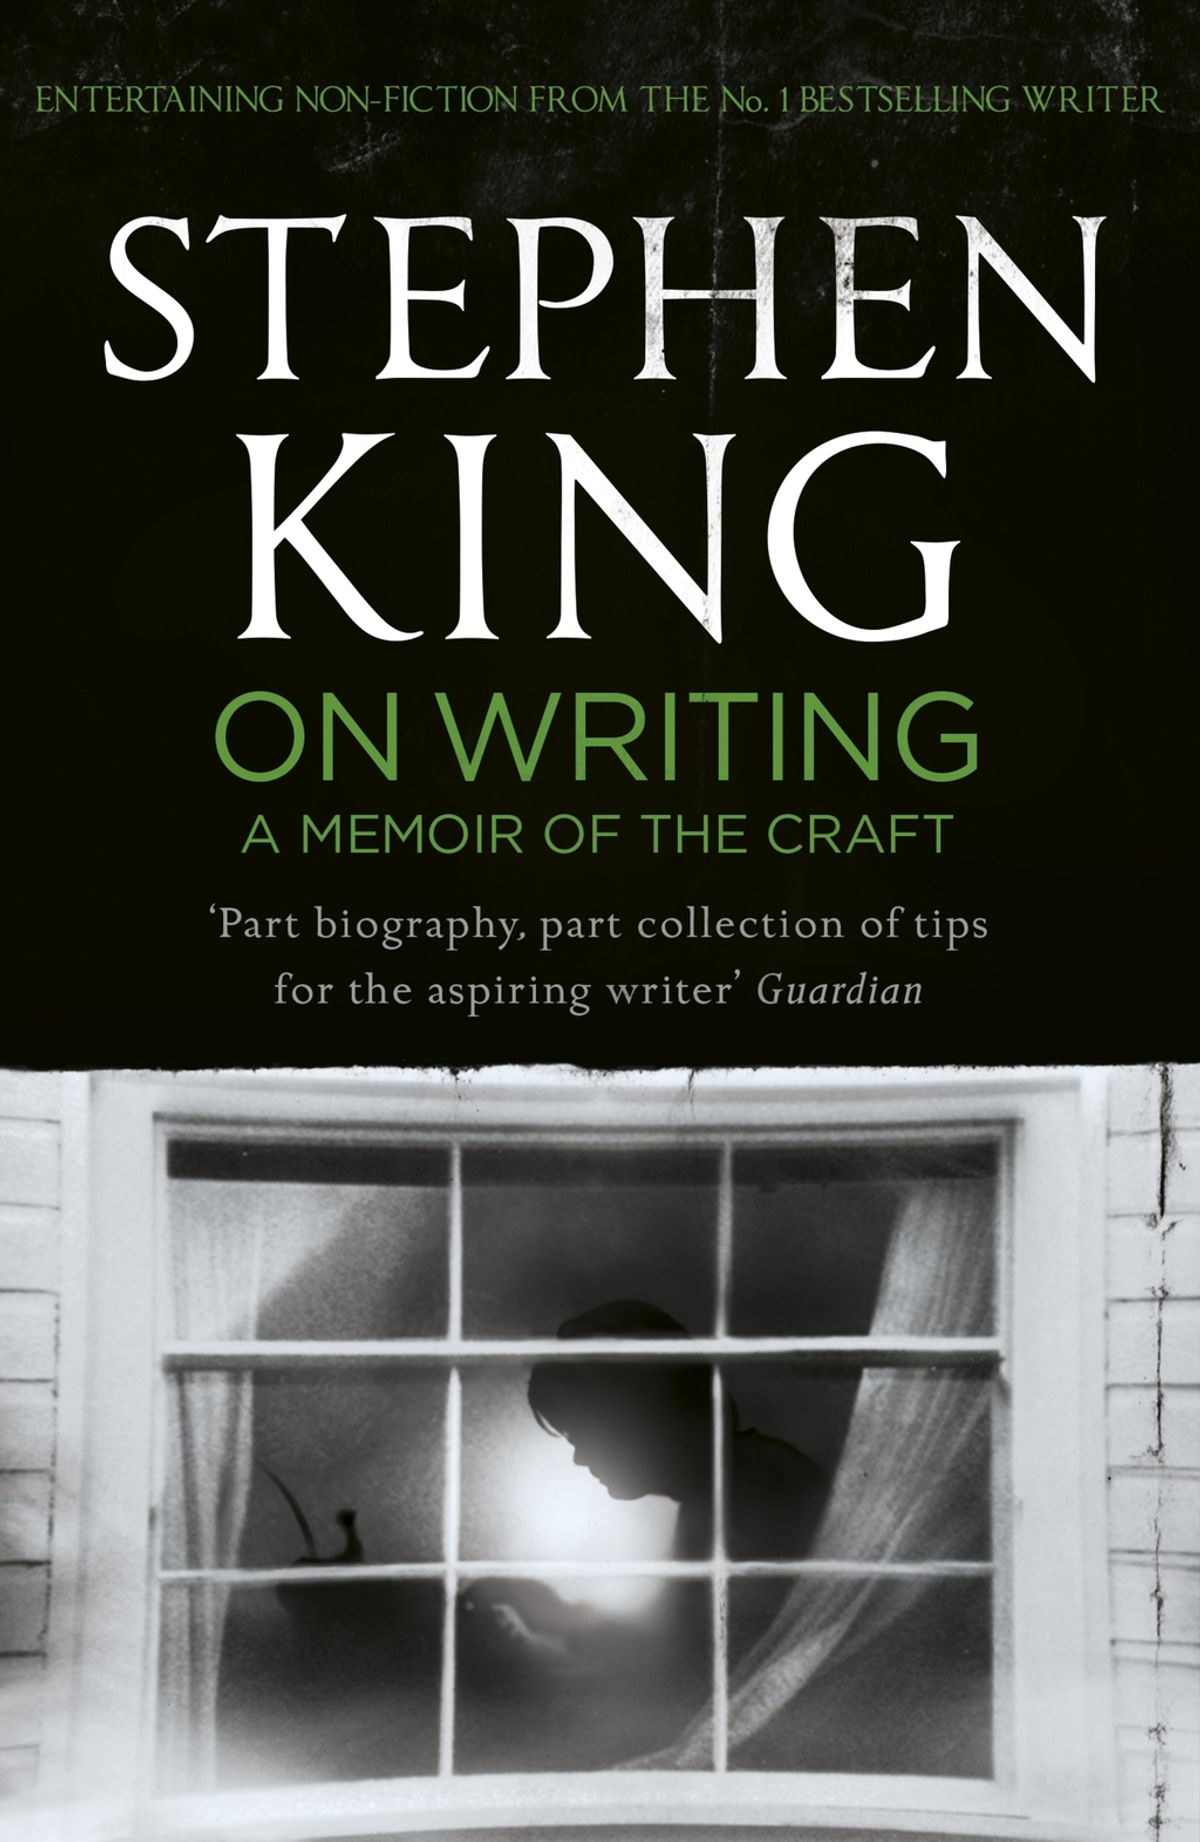 a biography of stephen edward king Stephen king: biography stephen edward king was born in fall 1947 in the american state maine, in portland that the boy was born may be called a miracle - nellie ruth pillsbury, the future writer's mother, was diagnosed with infertility.